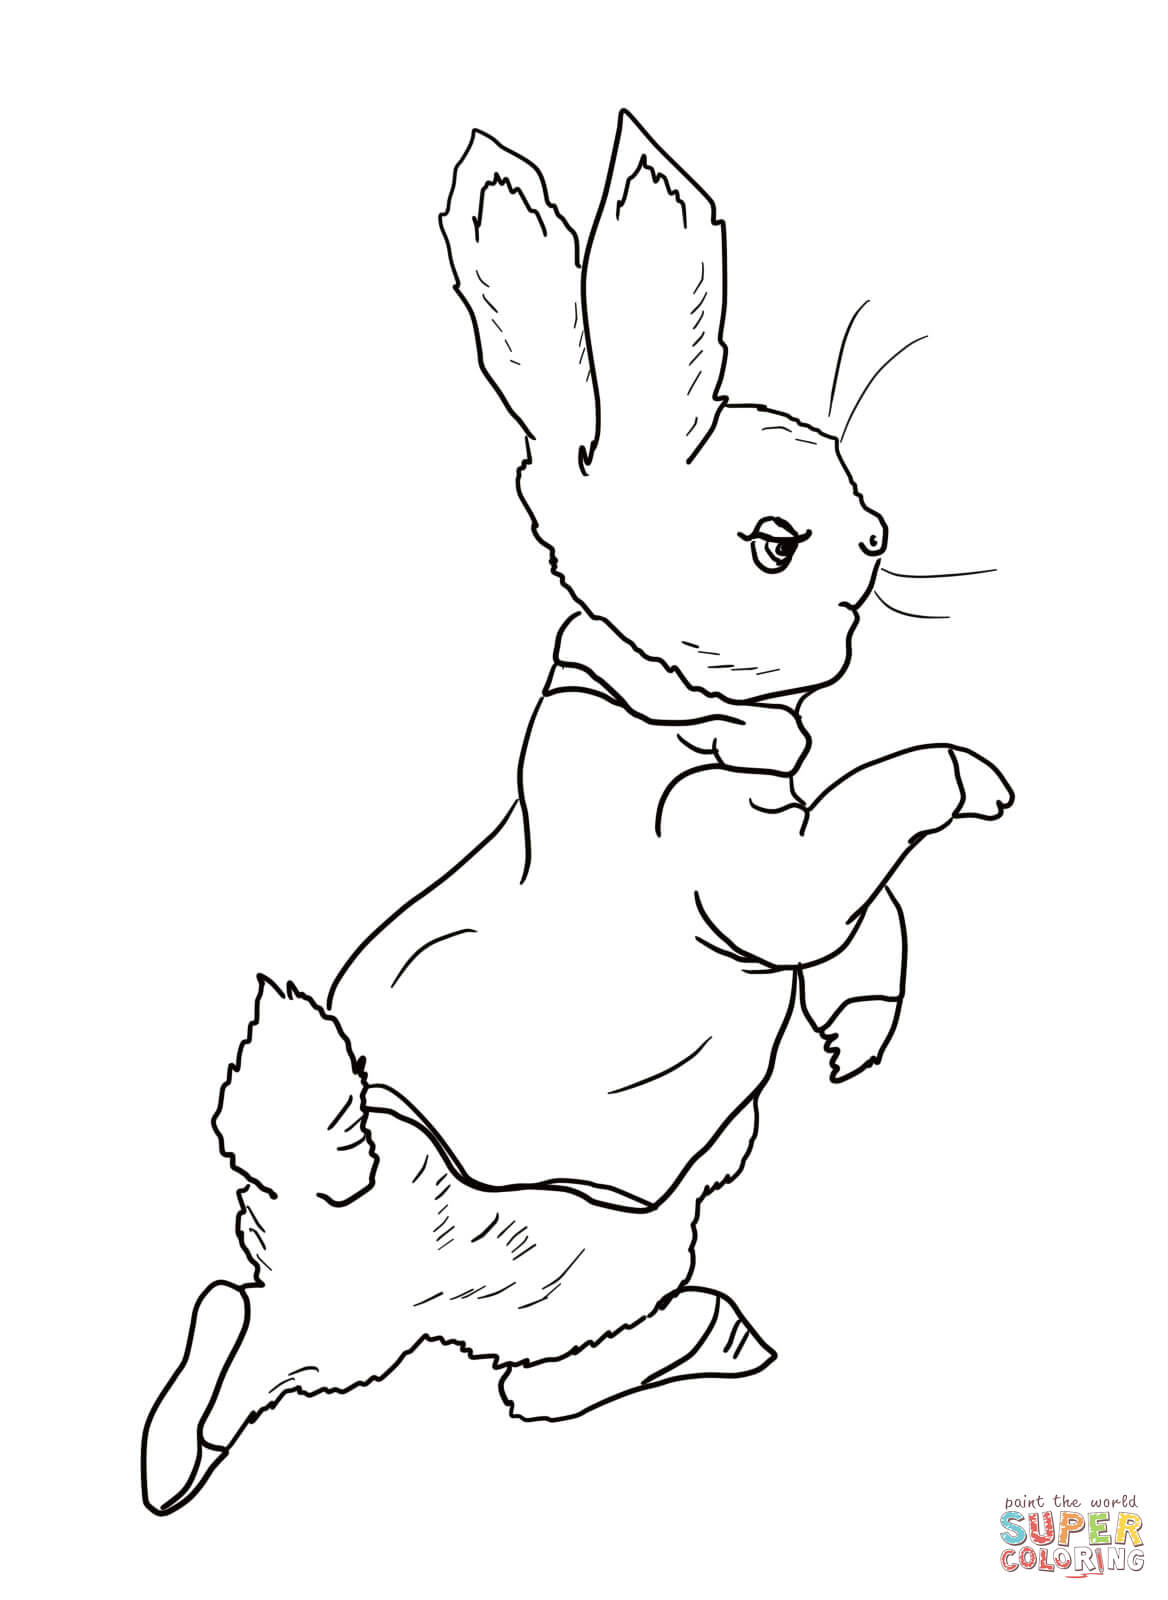 Peter rabbit coloring pages to